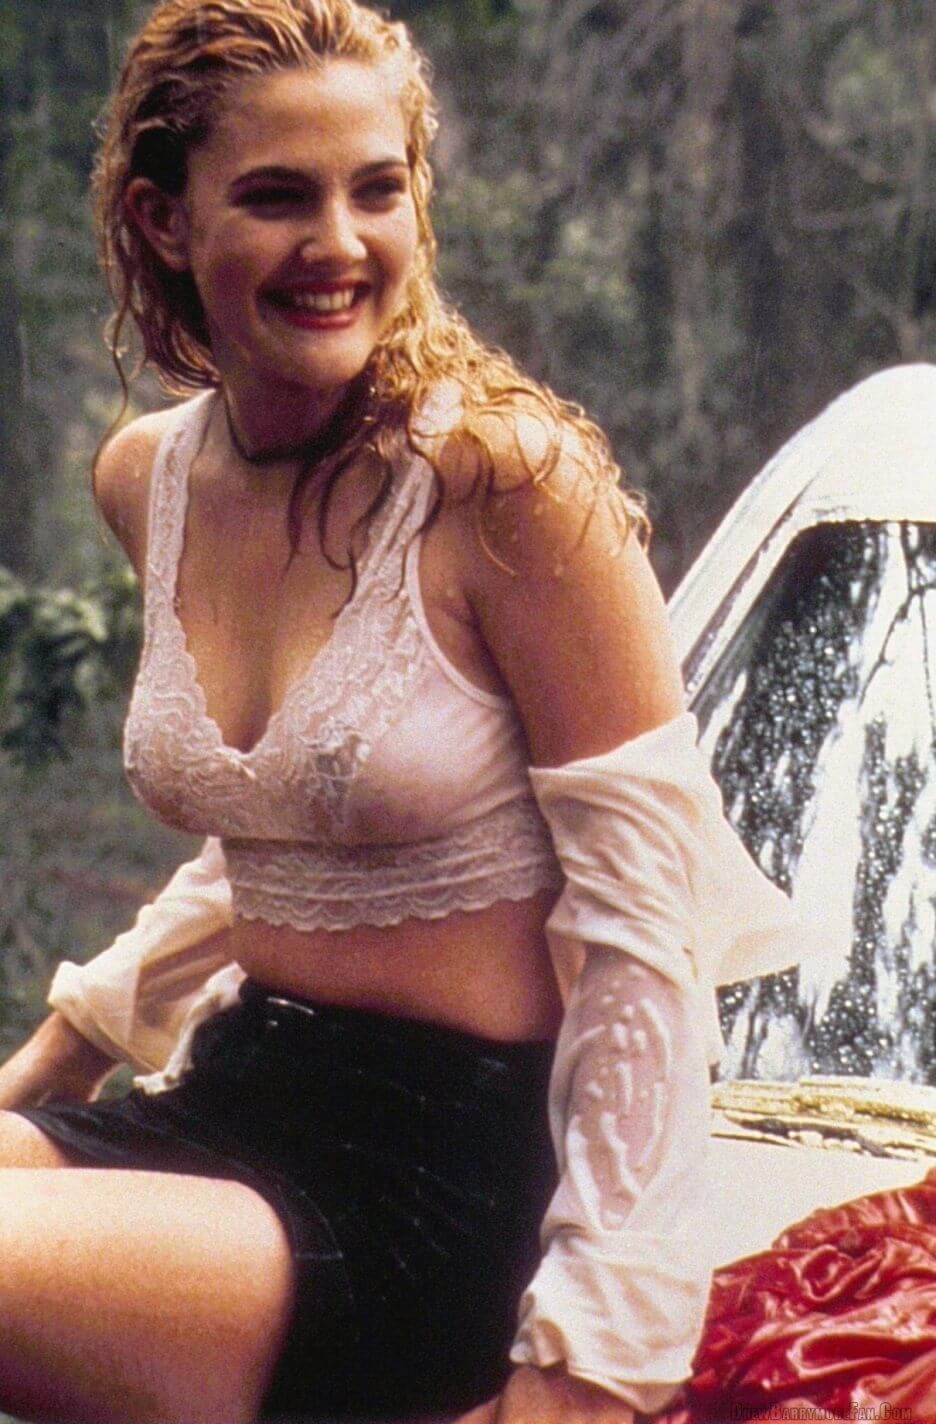 Drew Barrymore boobs pictures